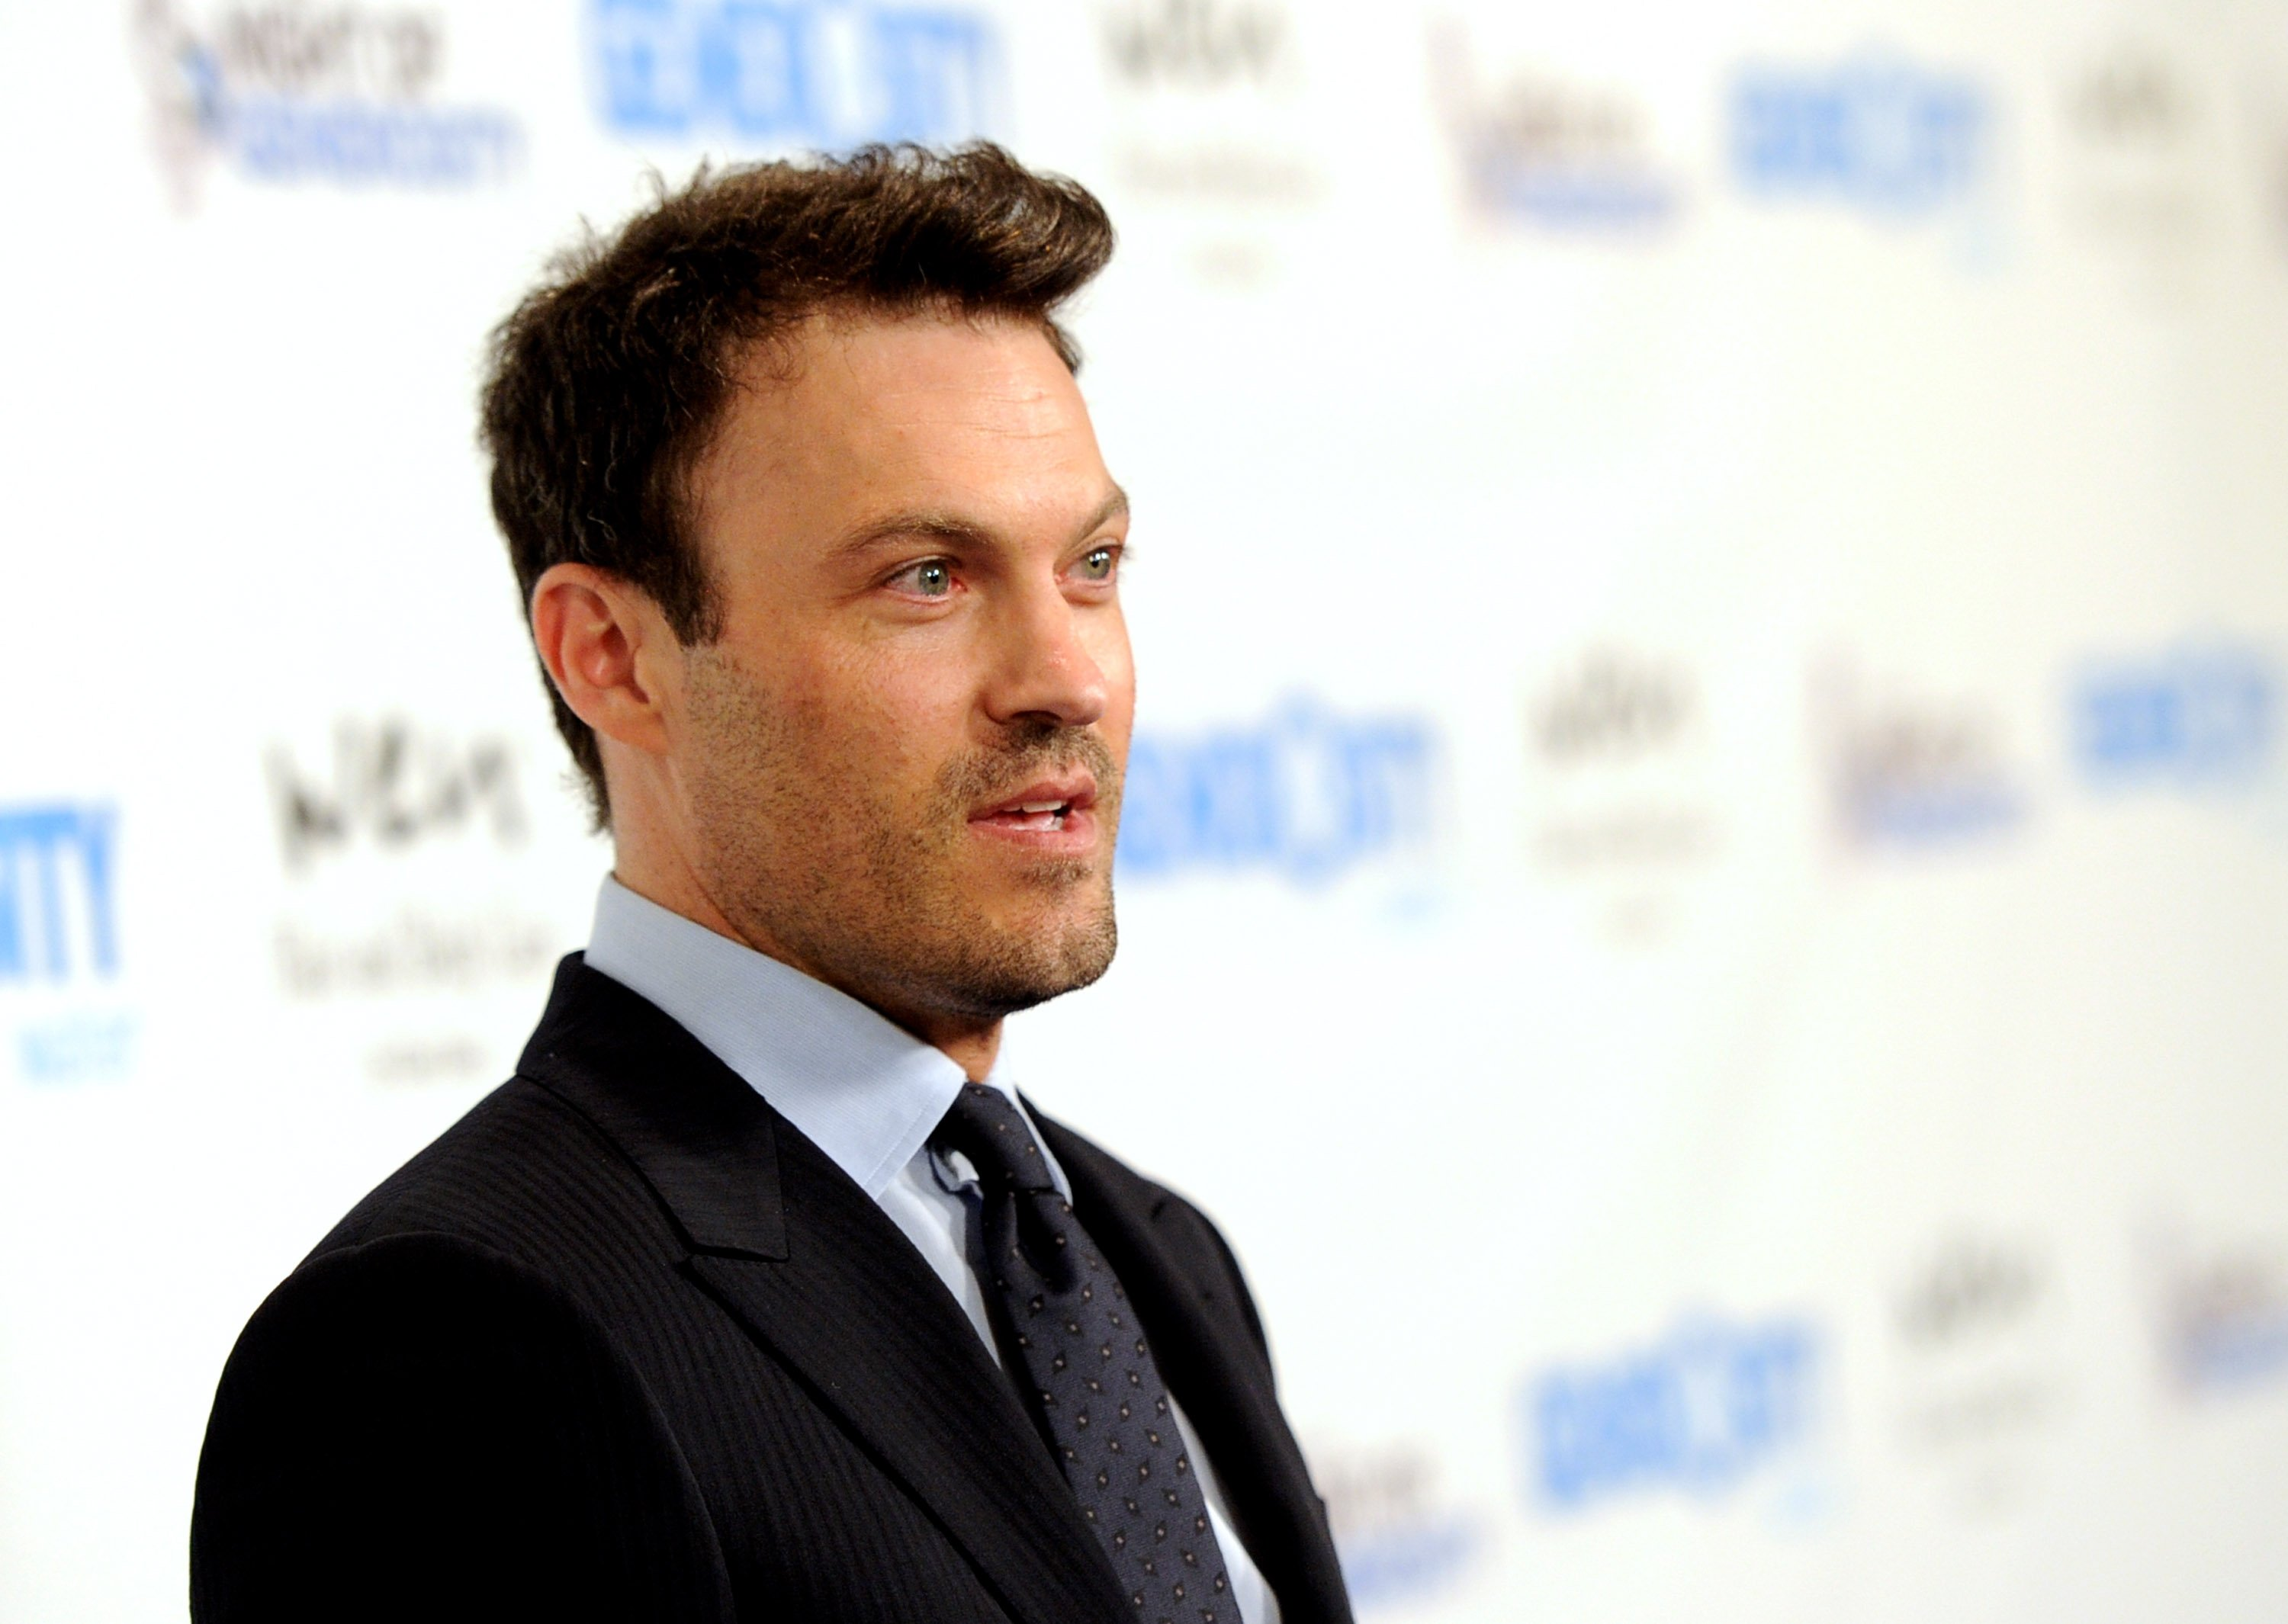 Brian Austin Green attends the 6th Annual Night Of Generosity Gala in Beverly Hills in December 2018 | Photo: Getty Images